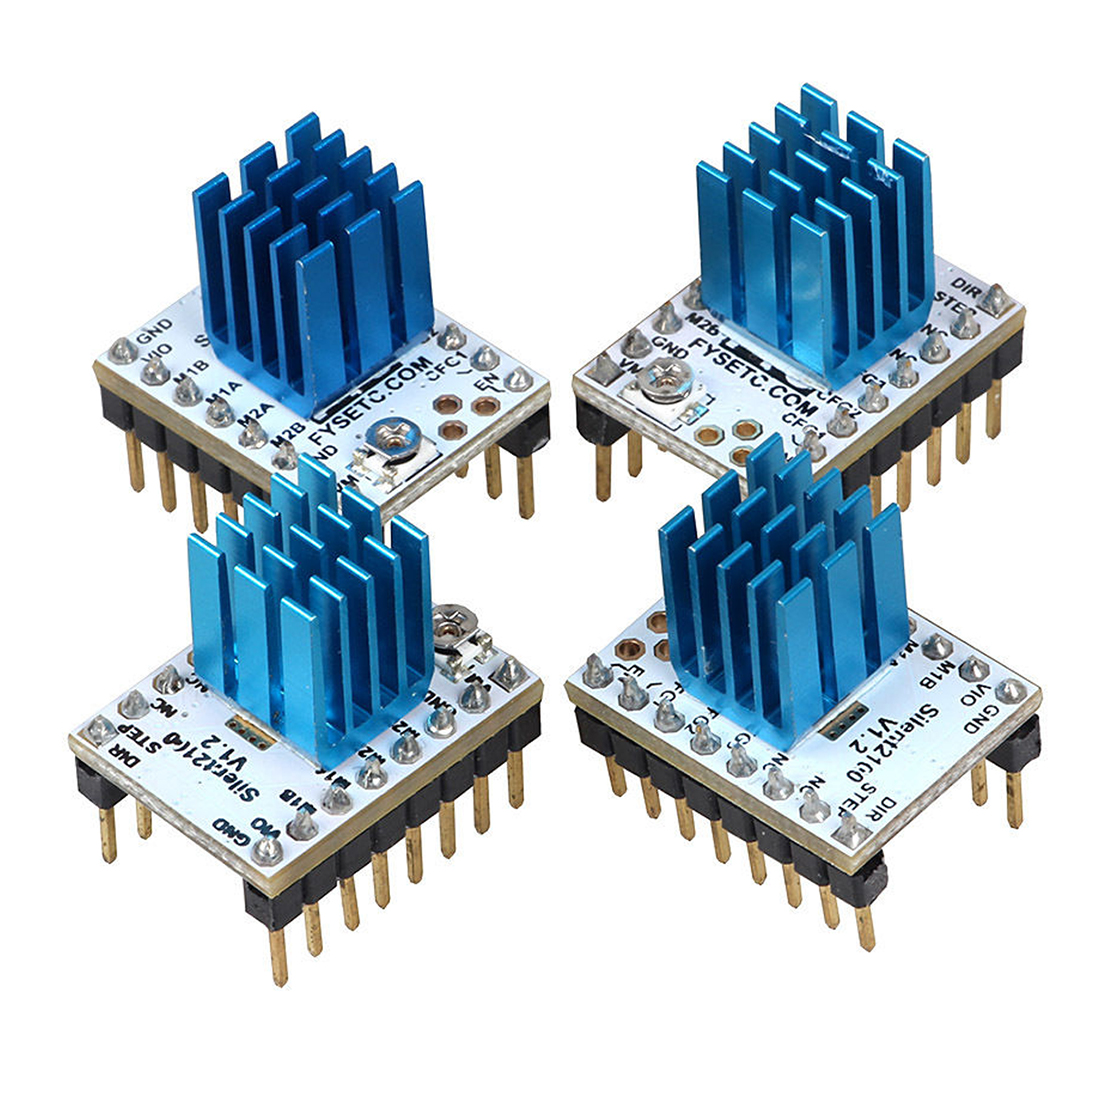 цена на 3D Printer Motor Drive for Anycubic TMC2100 Stepper Motor Driver with free Heat Sink WHITE